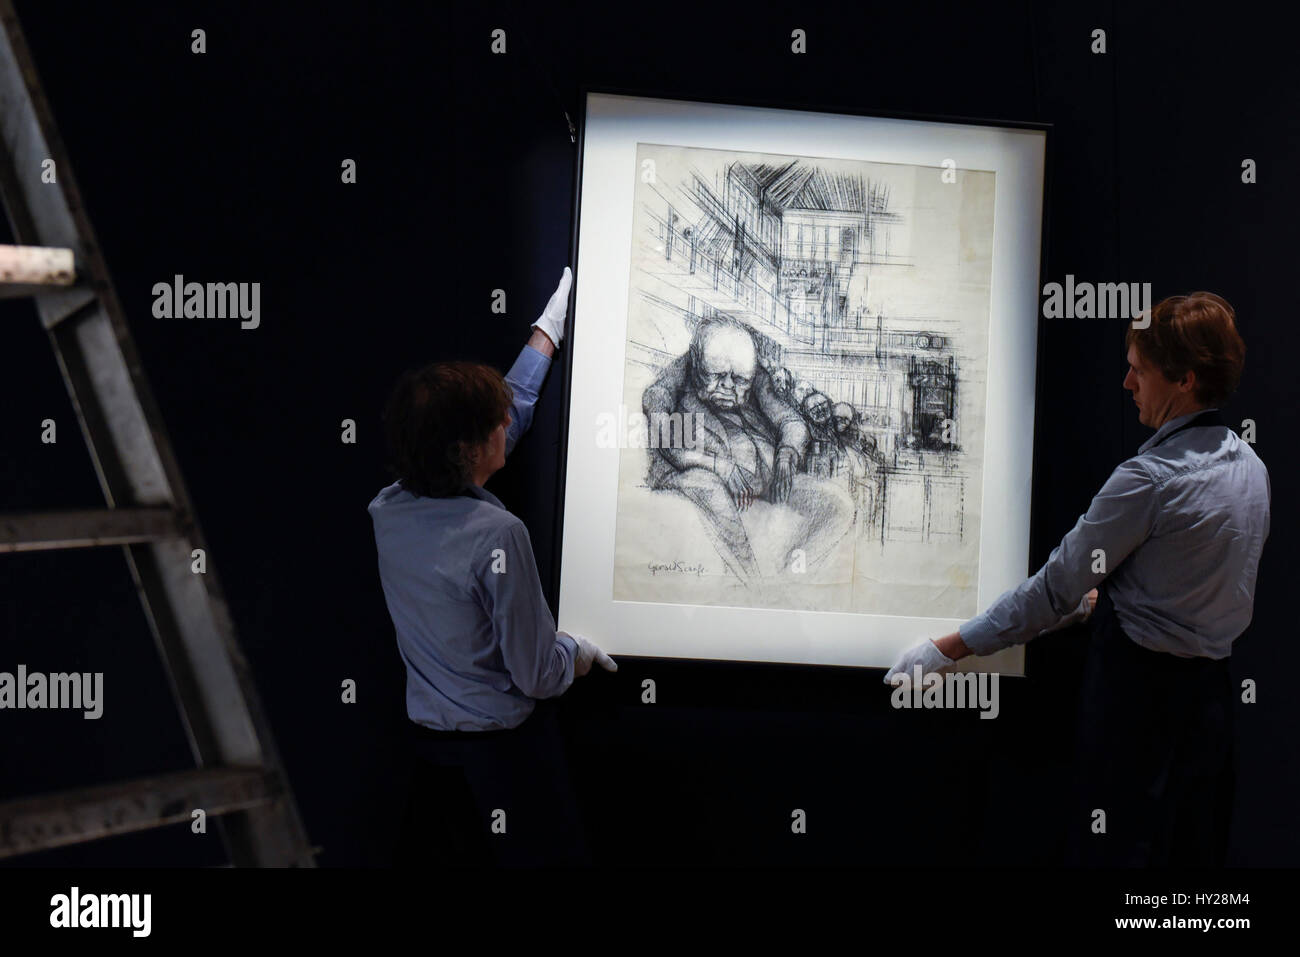 At Sothebys London Auction House Imágenes De Stock   At Sothebys ... eb2a616dde